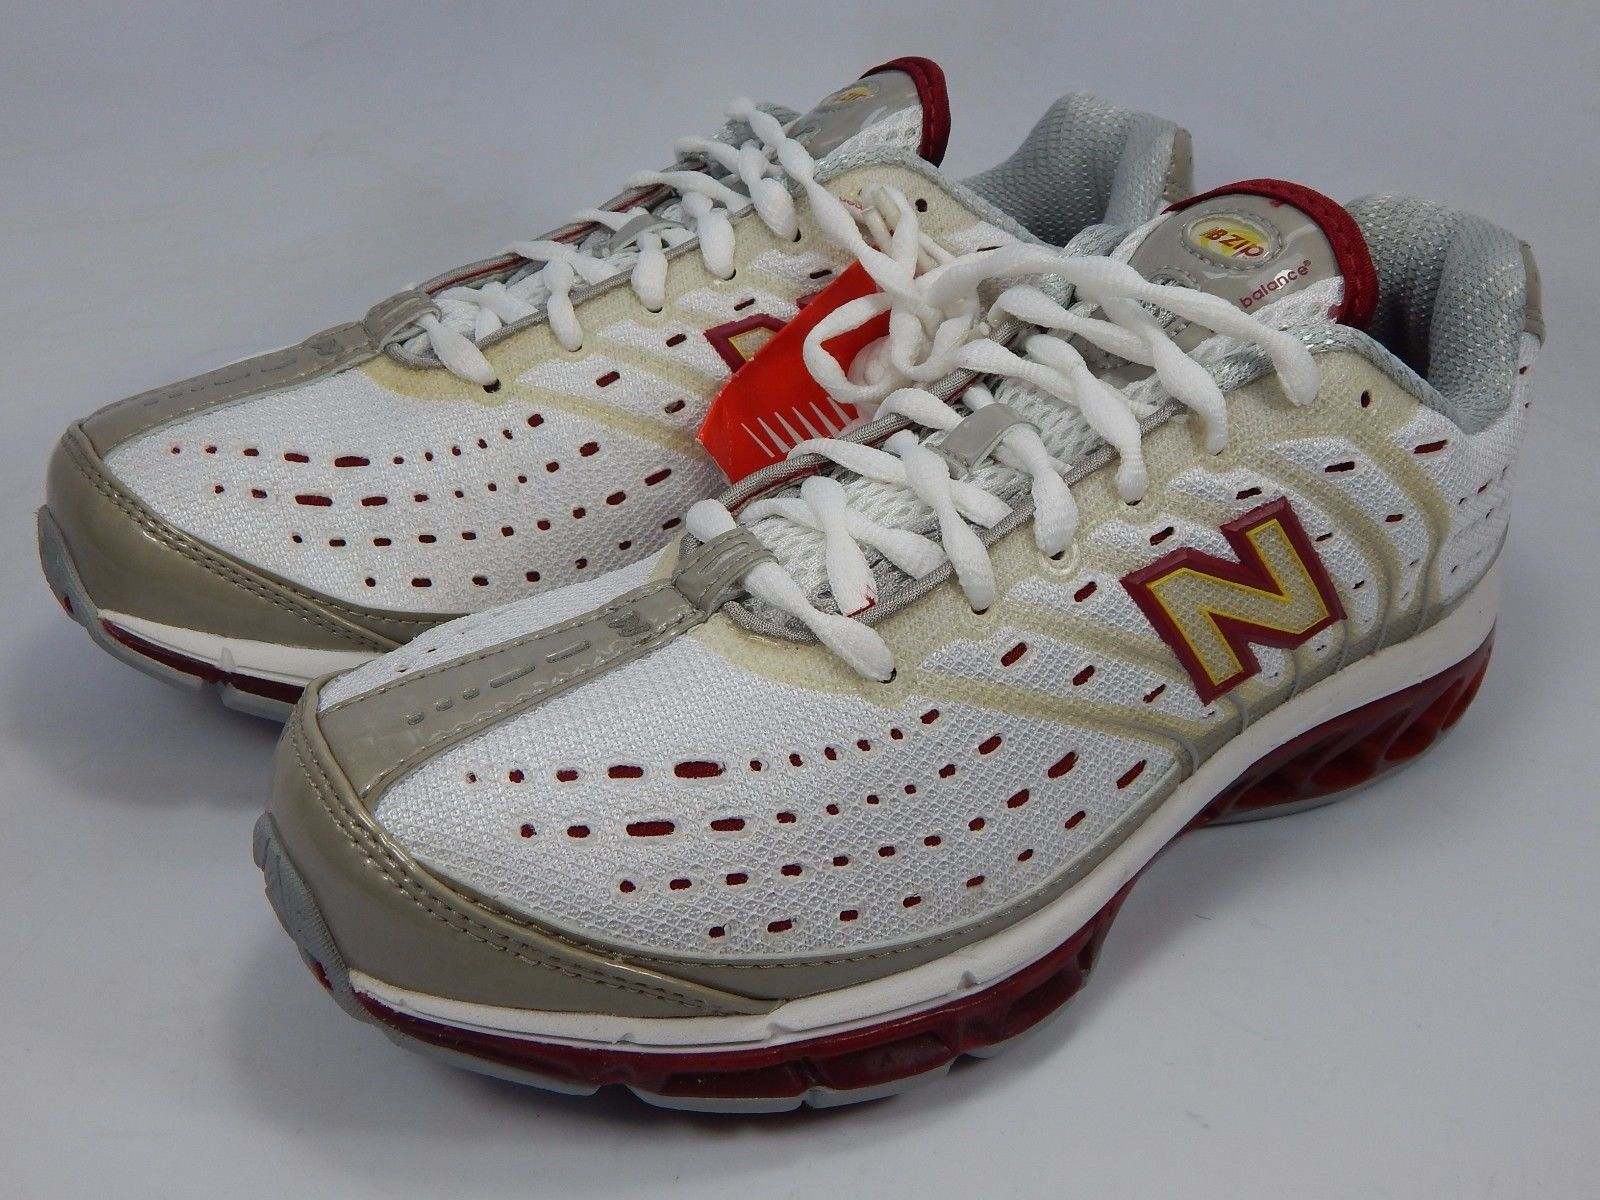 New Balance Zip 8507 Women's Running Shoes Sz US 8.5 M (B) EU 40 White WR8507NB